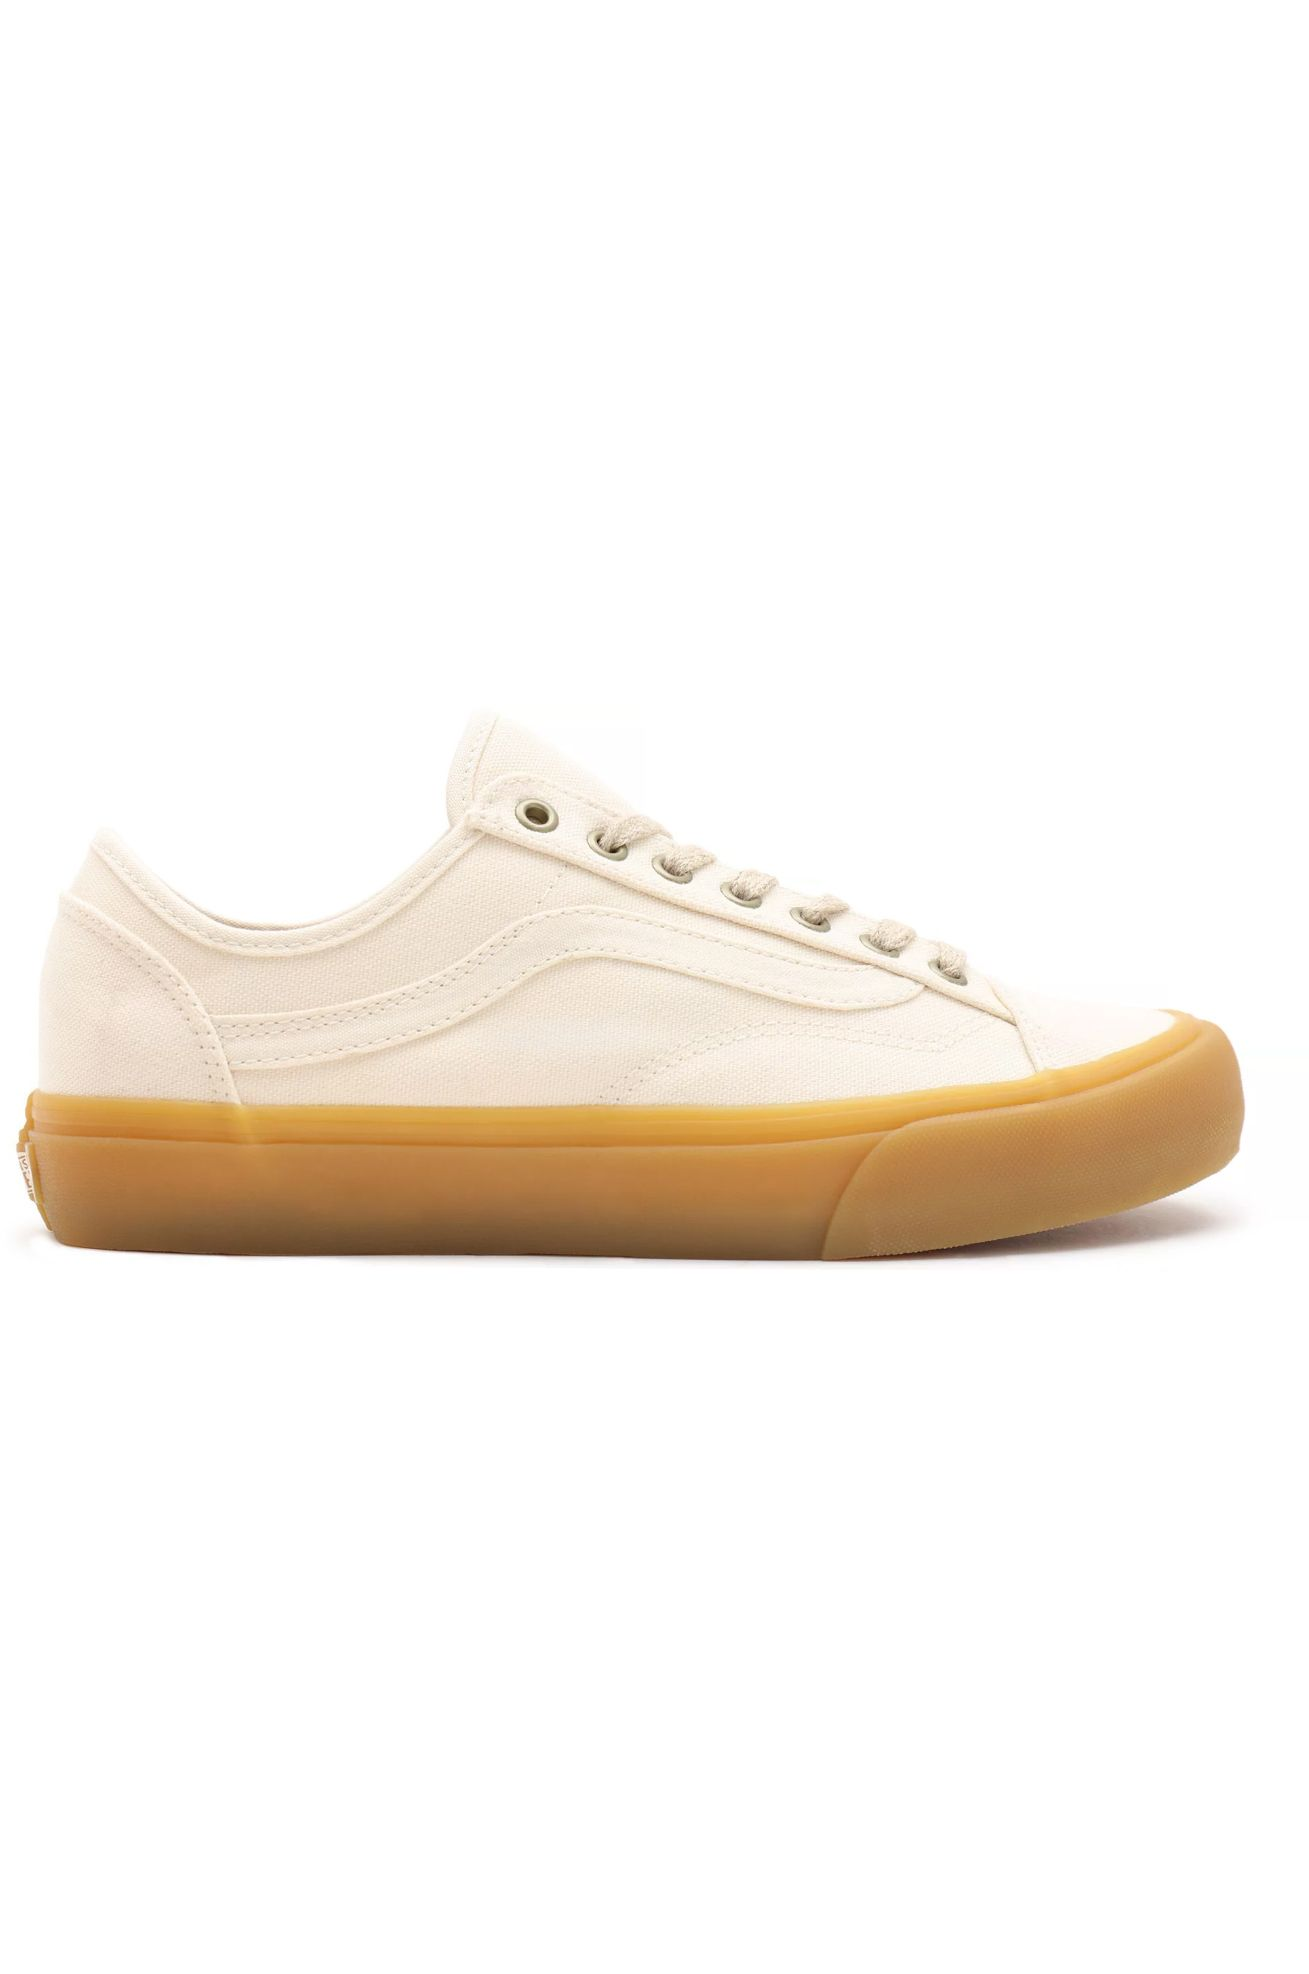 Vans Shoes UA STYLE 36 DECON SF (Eco Theory) Natural/Double Light Gum